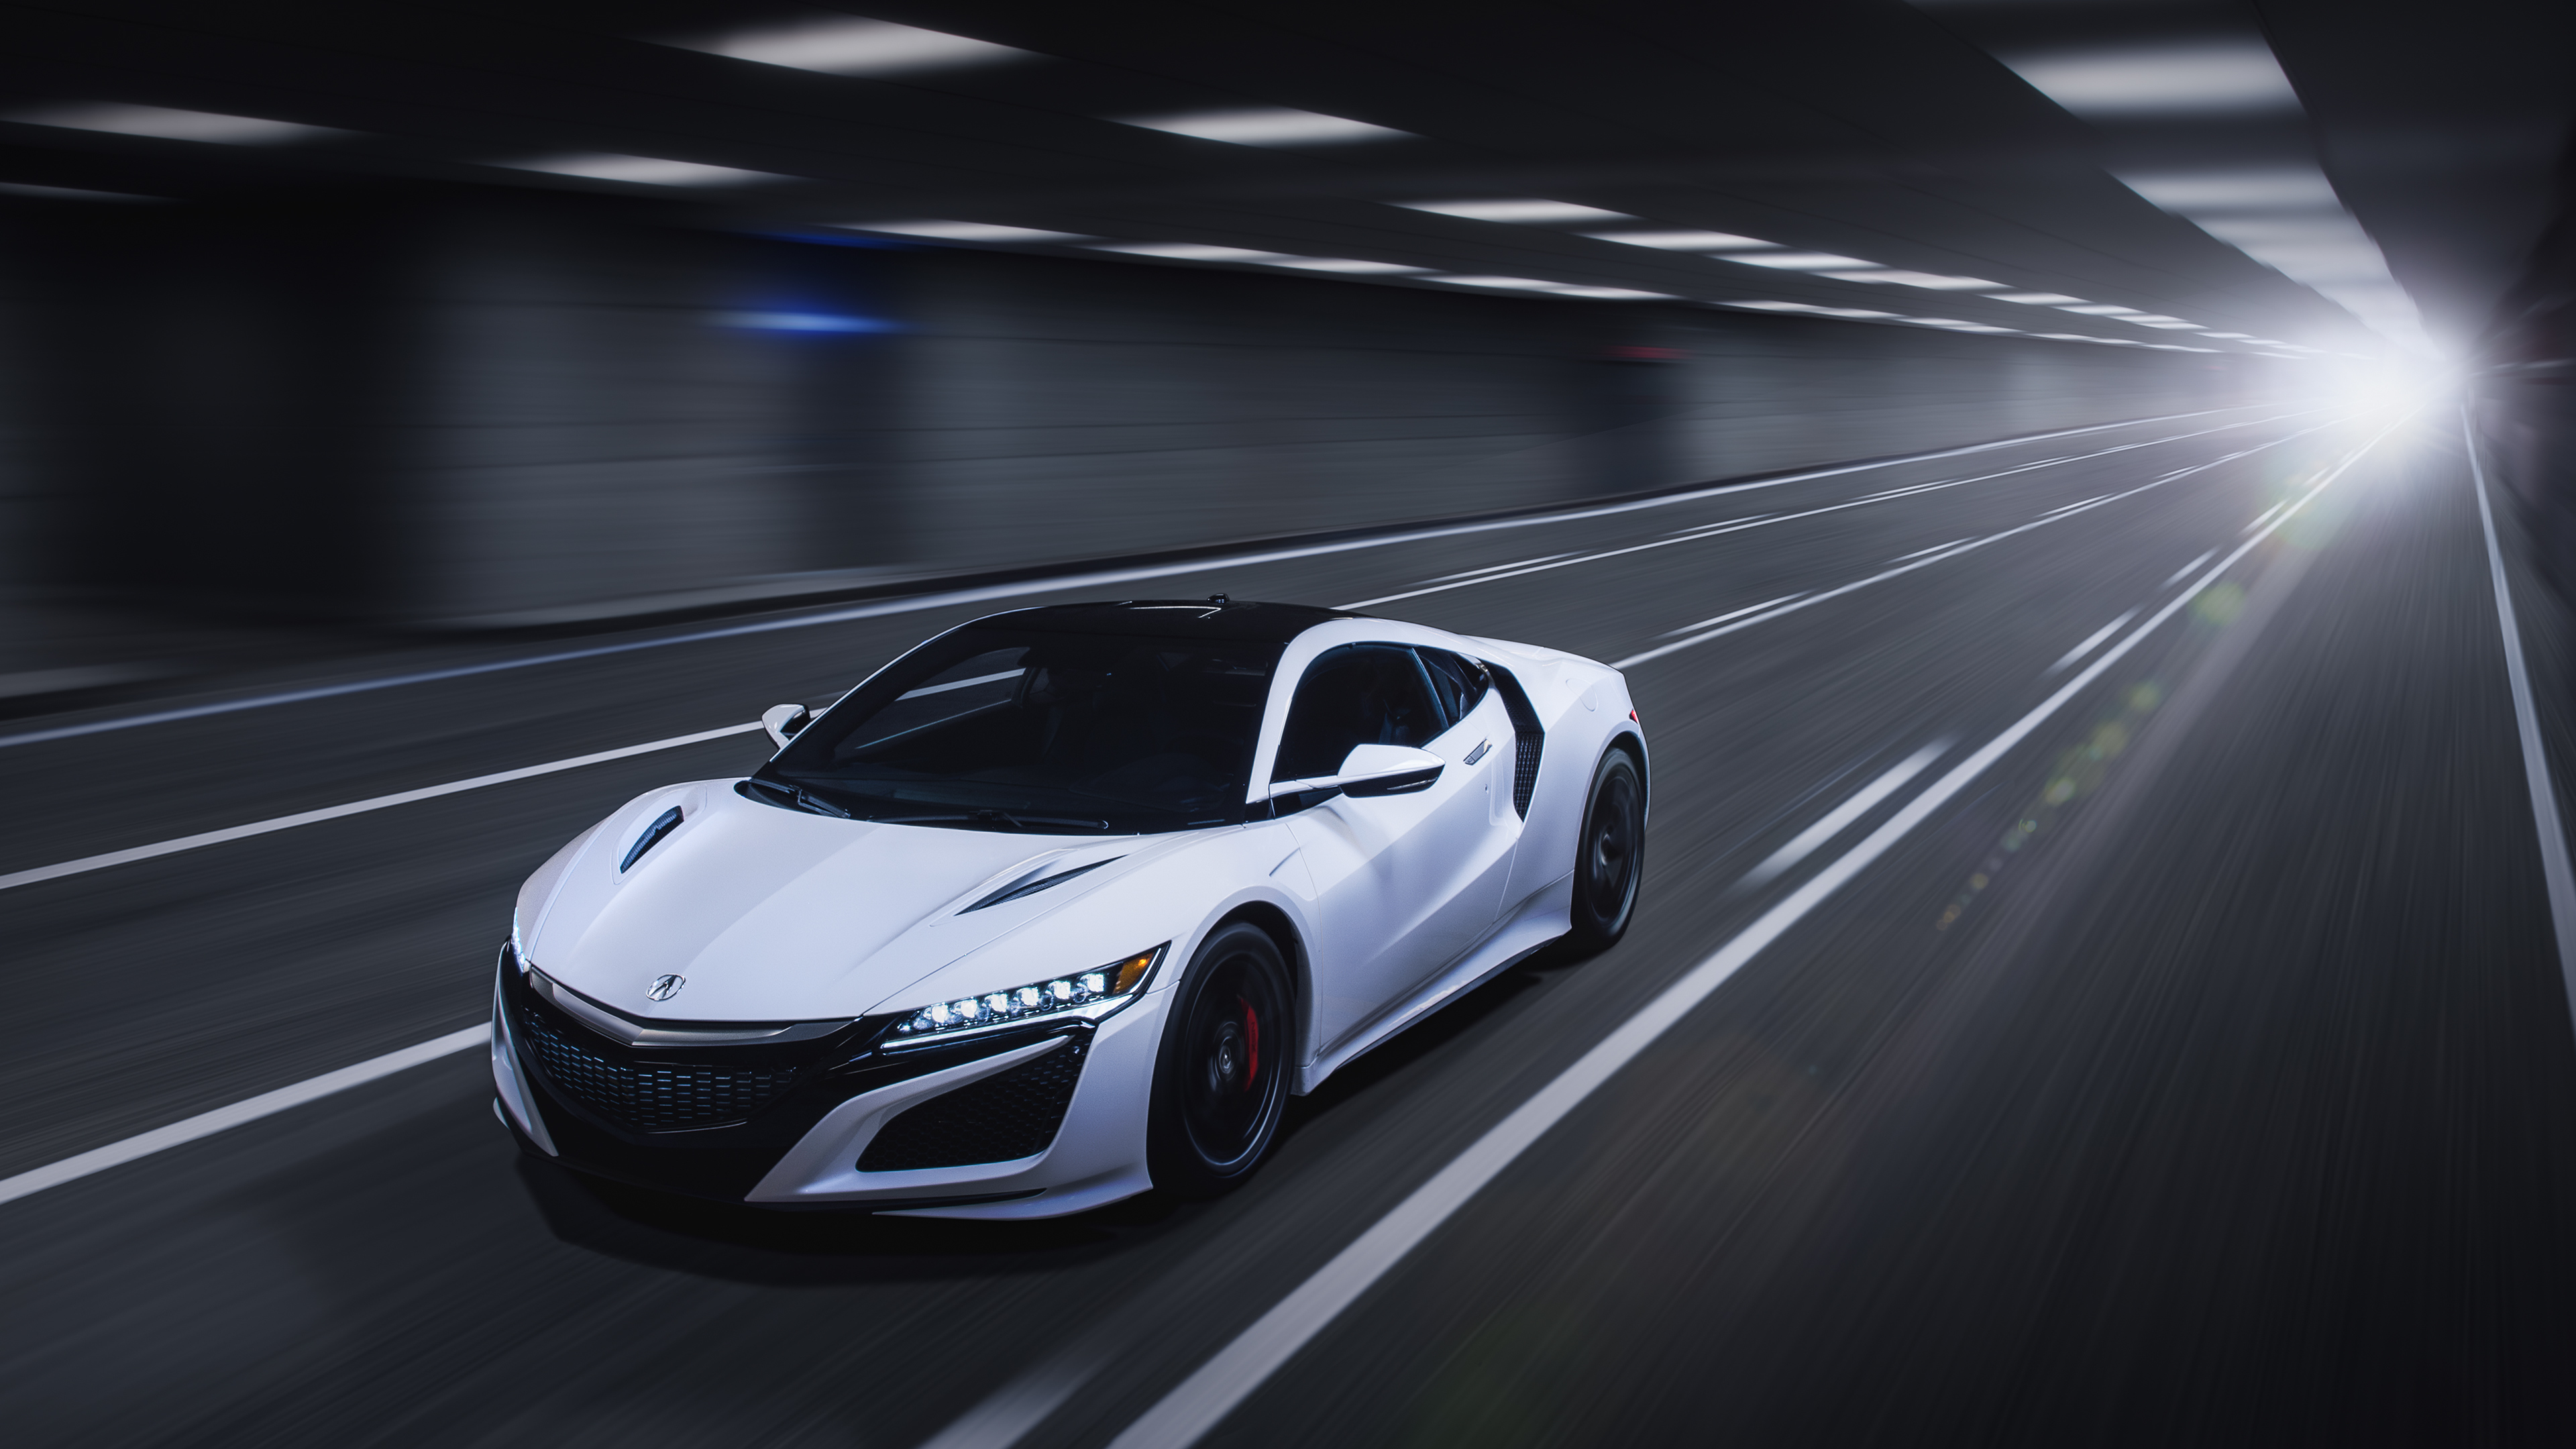 acura nsx 2019 front 4k 1555206881 - Acura NSX 2019 Front 4k - honda wallpapers, honda nsx wallpapers, hd-wallpapers, cars wallpapers, behance wallpapers, 4k-wallpapers